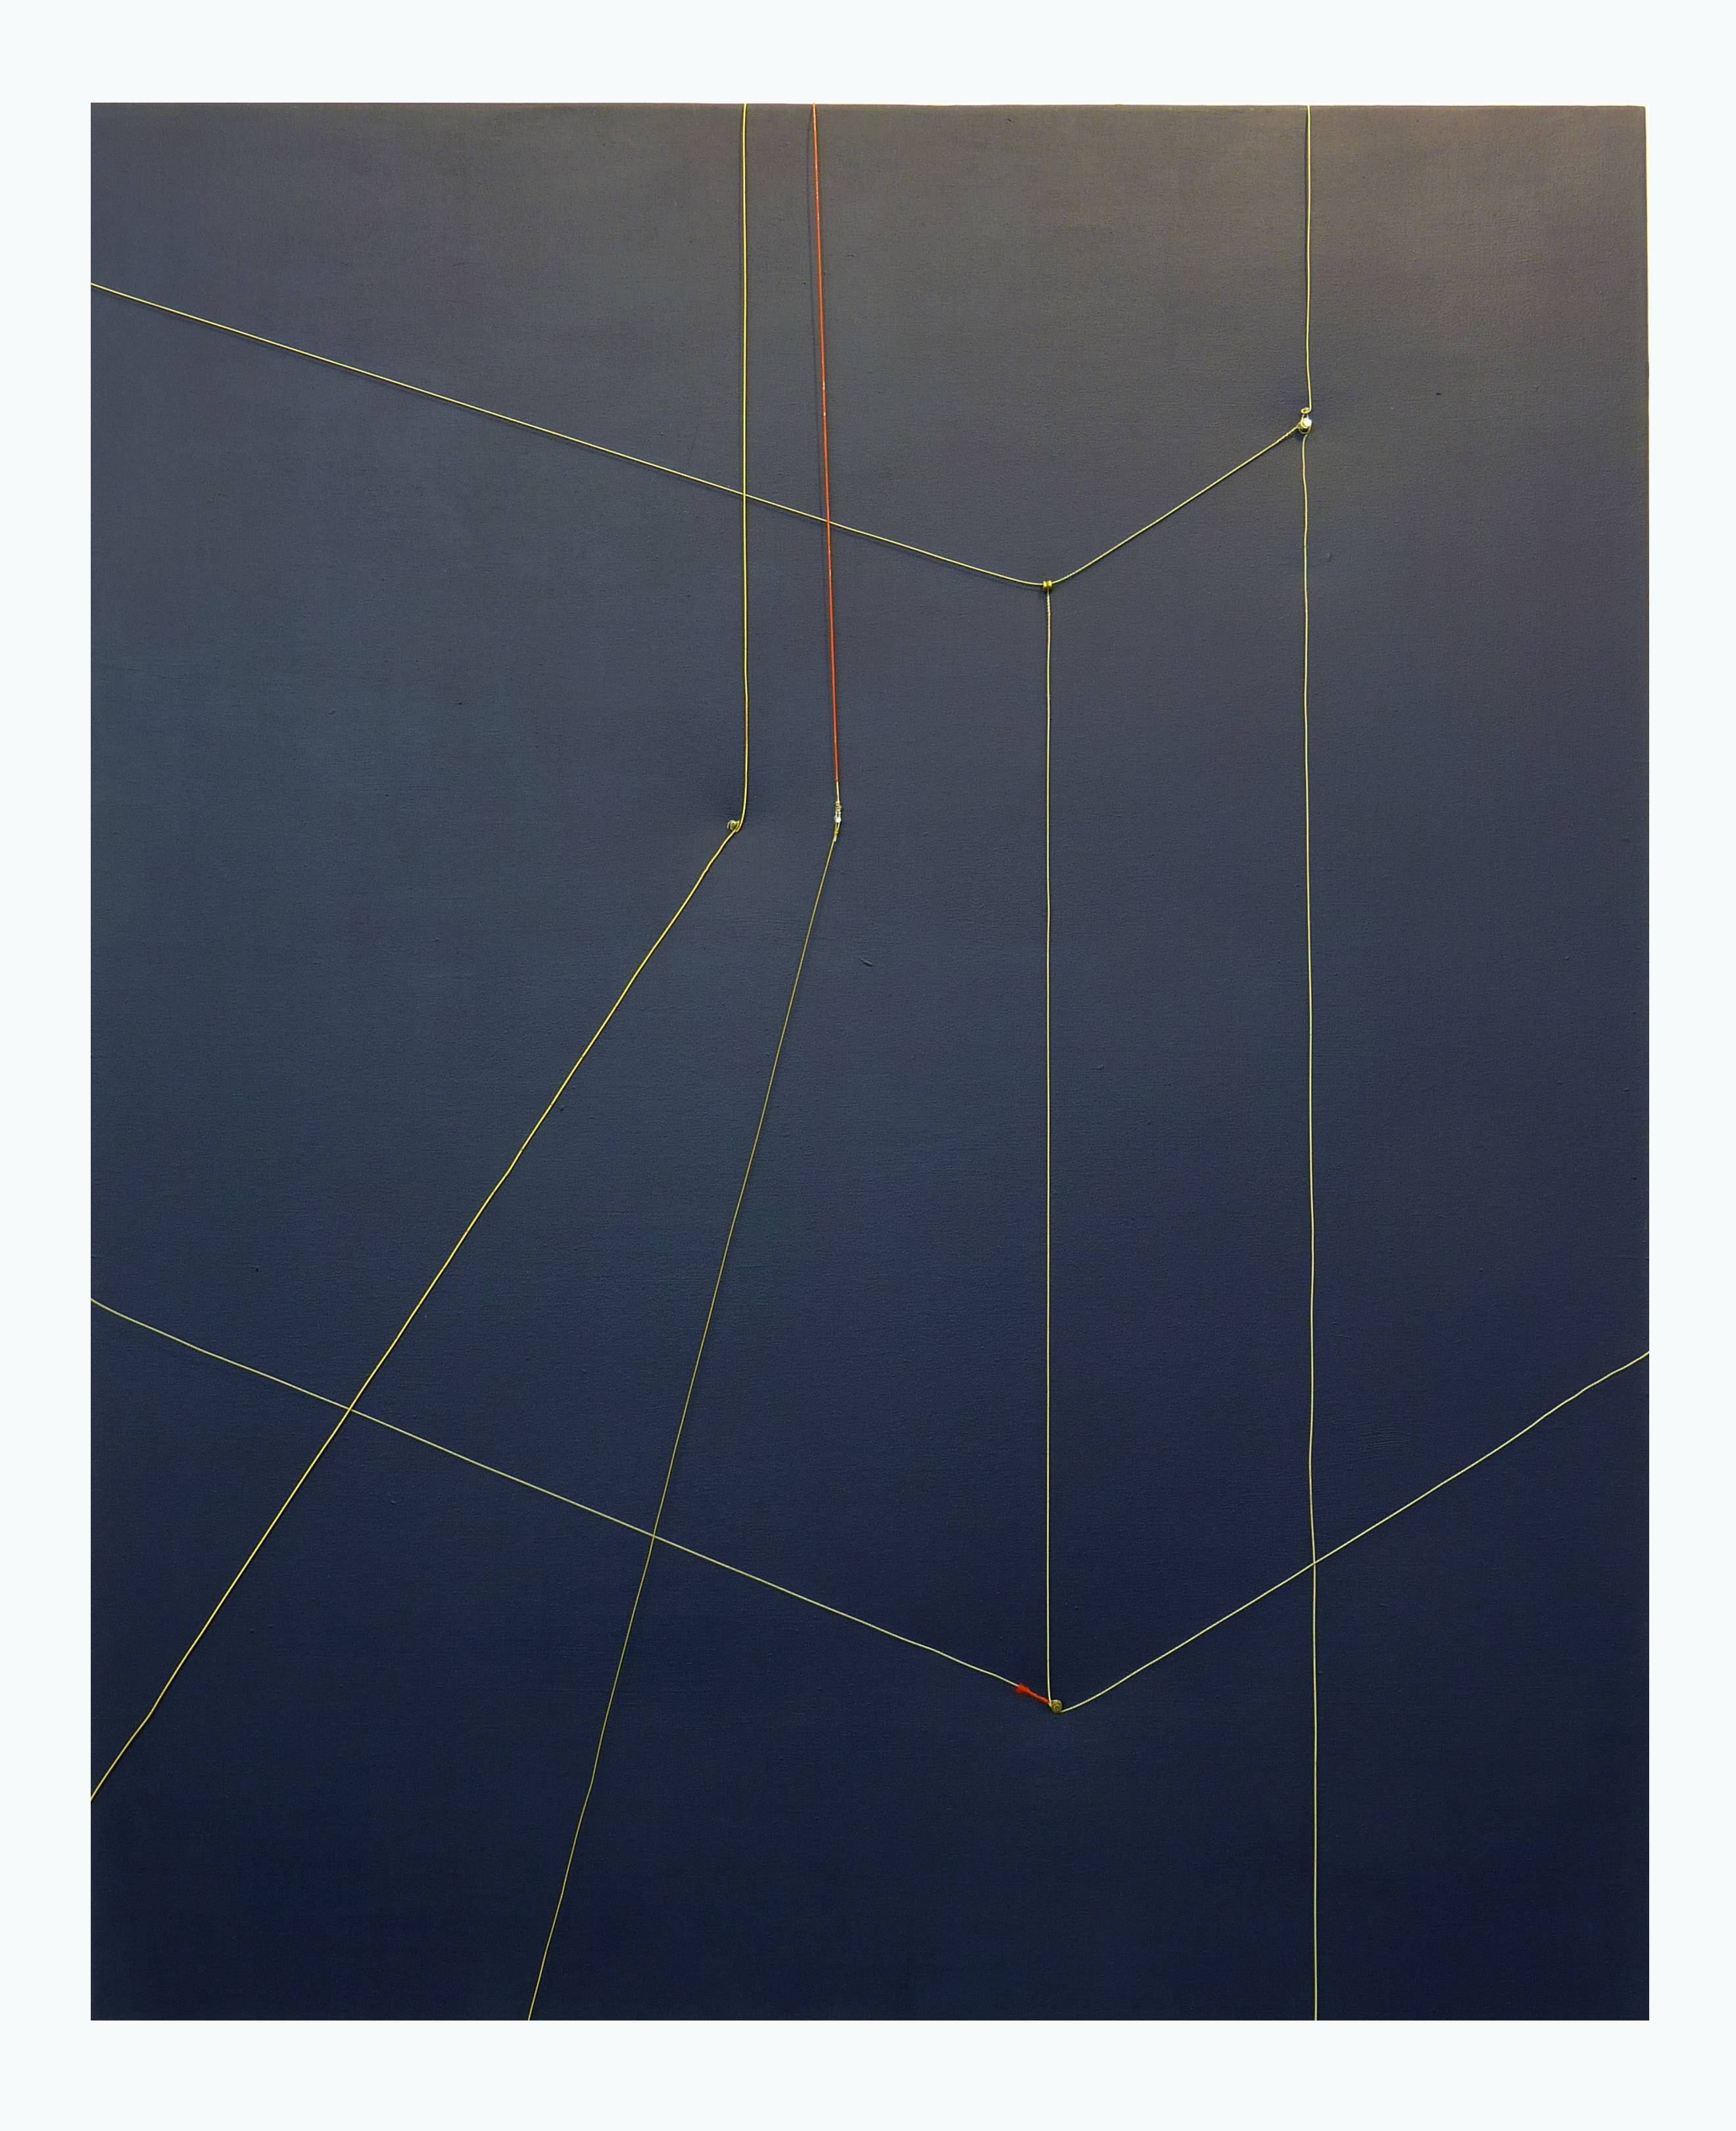 advances in the virtual space 2012 - guitar strings, acrylic on canvas_re